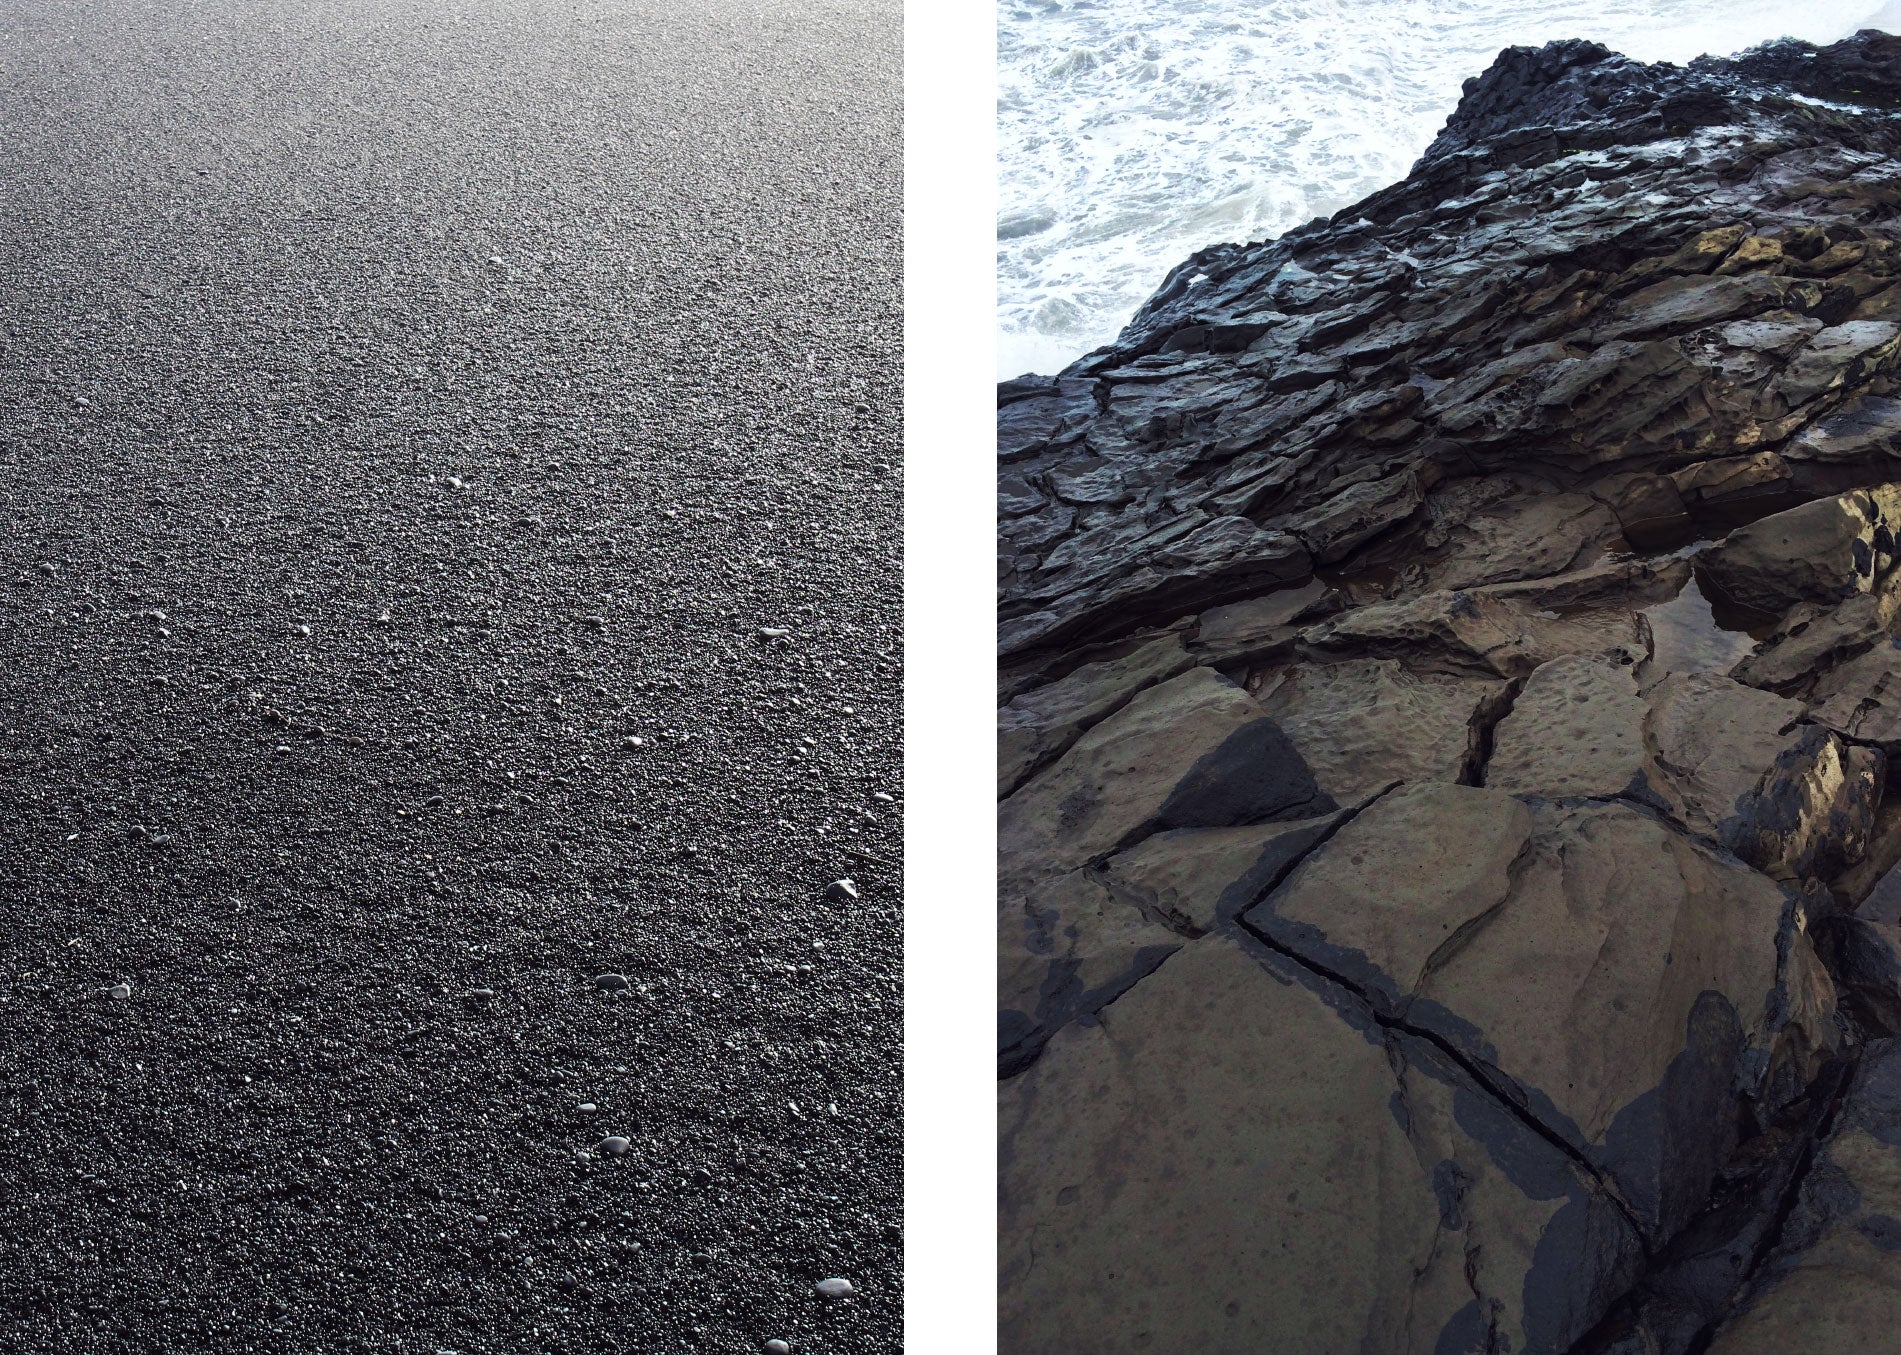 Black sand and rocks next to the sea